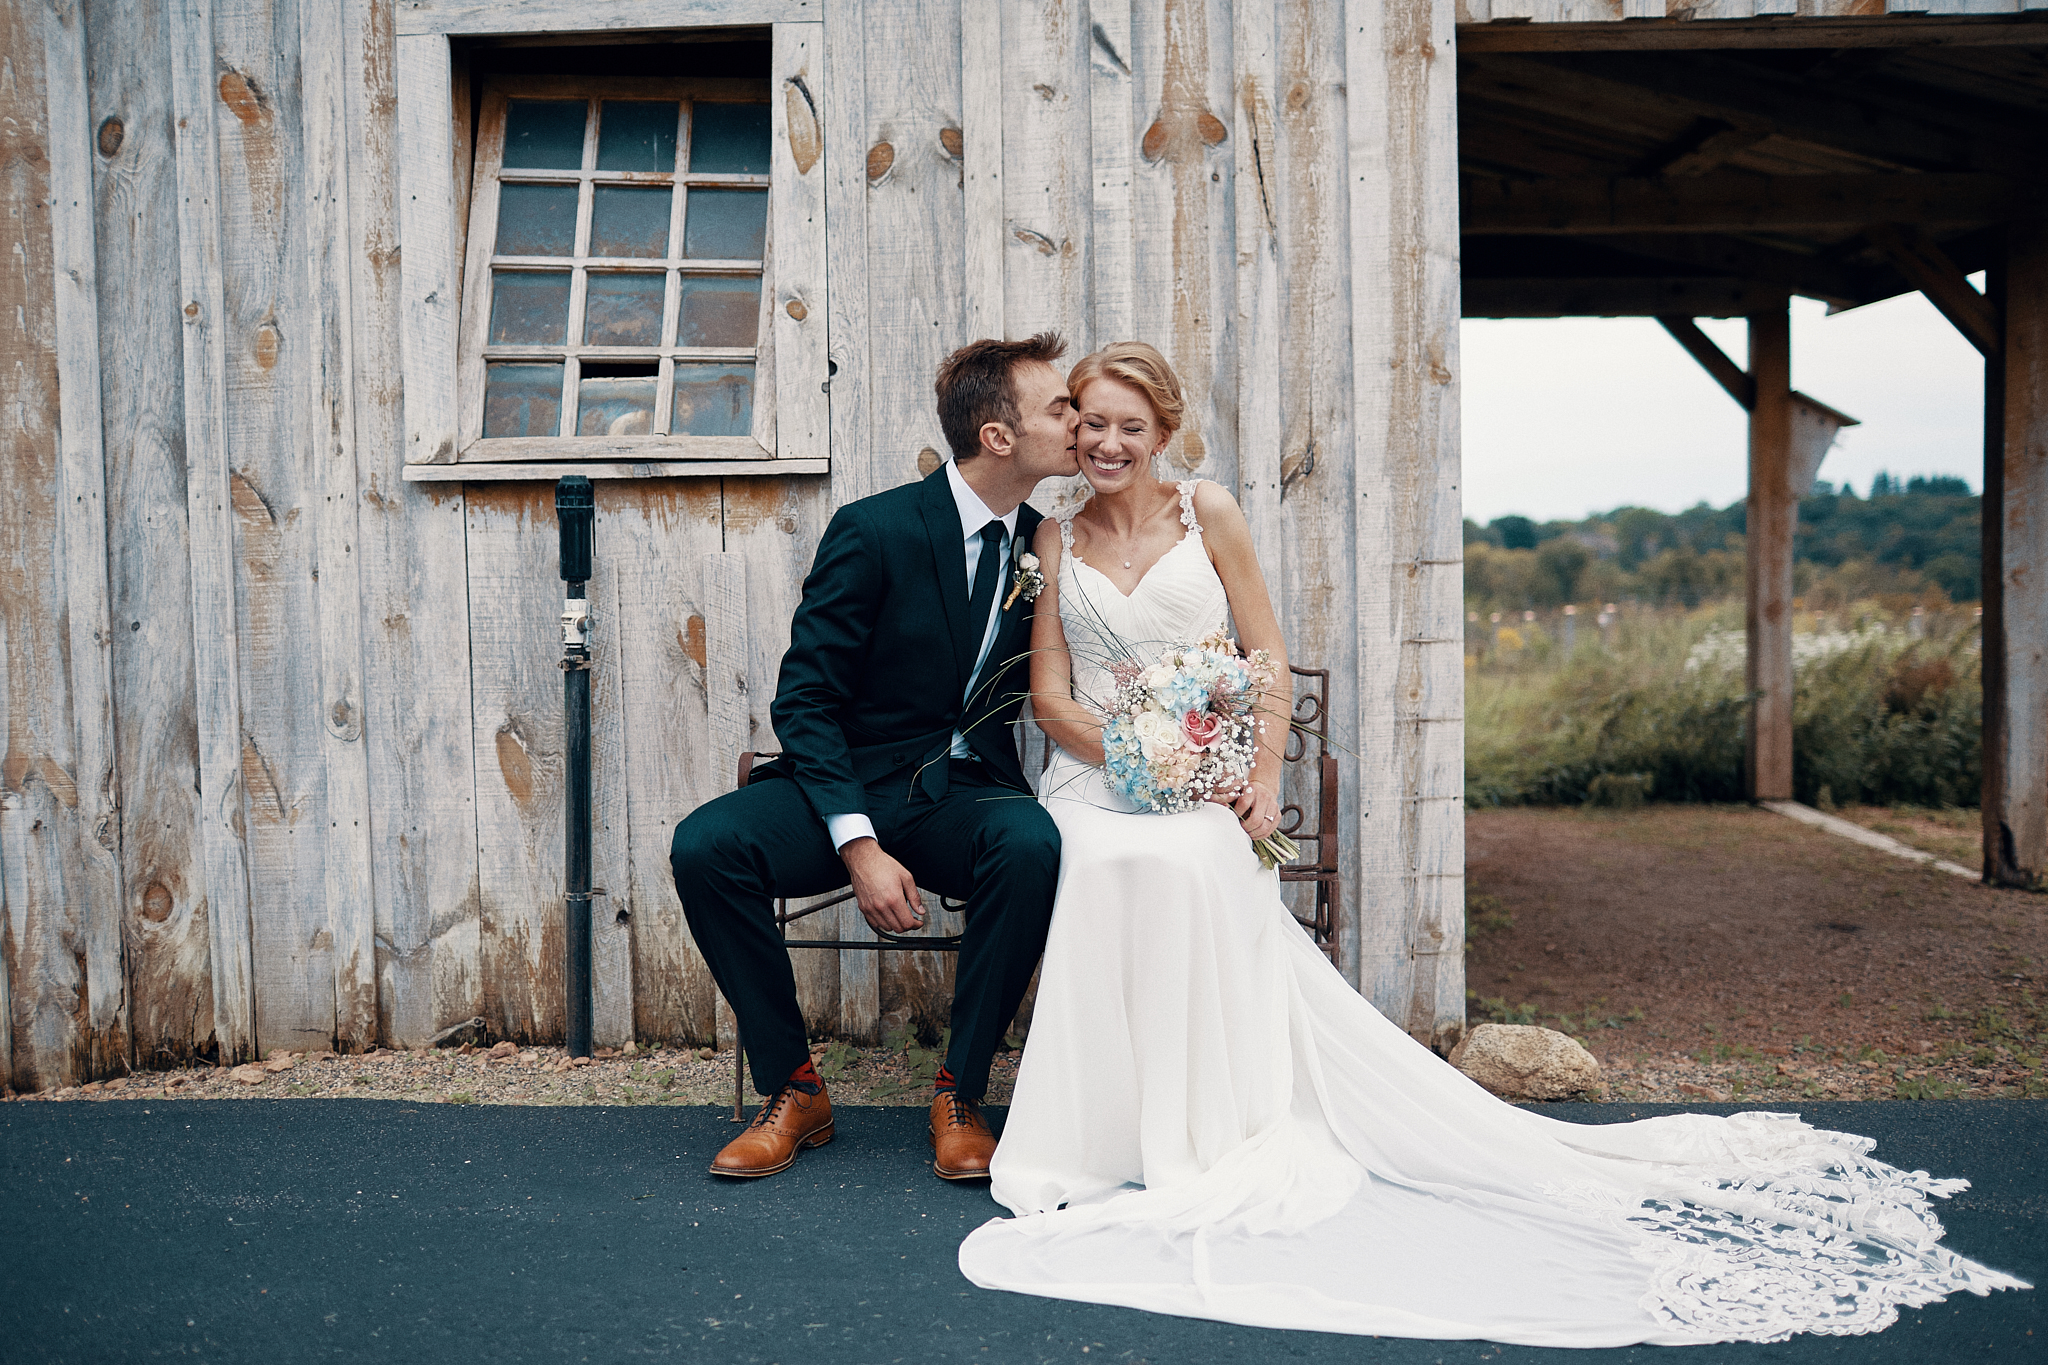 Emotional_Outpost_Center_Wedding_And_Engaement_Photographer_In_Minnesota_High_End_Brand_Something_Candid_013.JPG